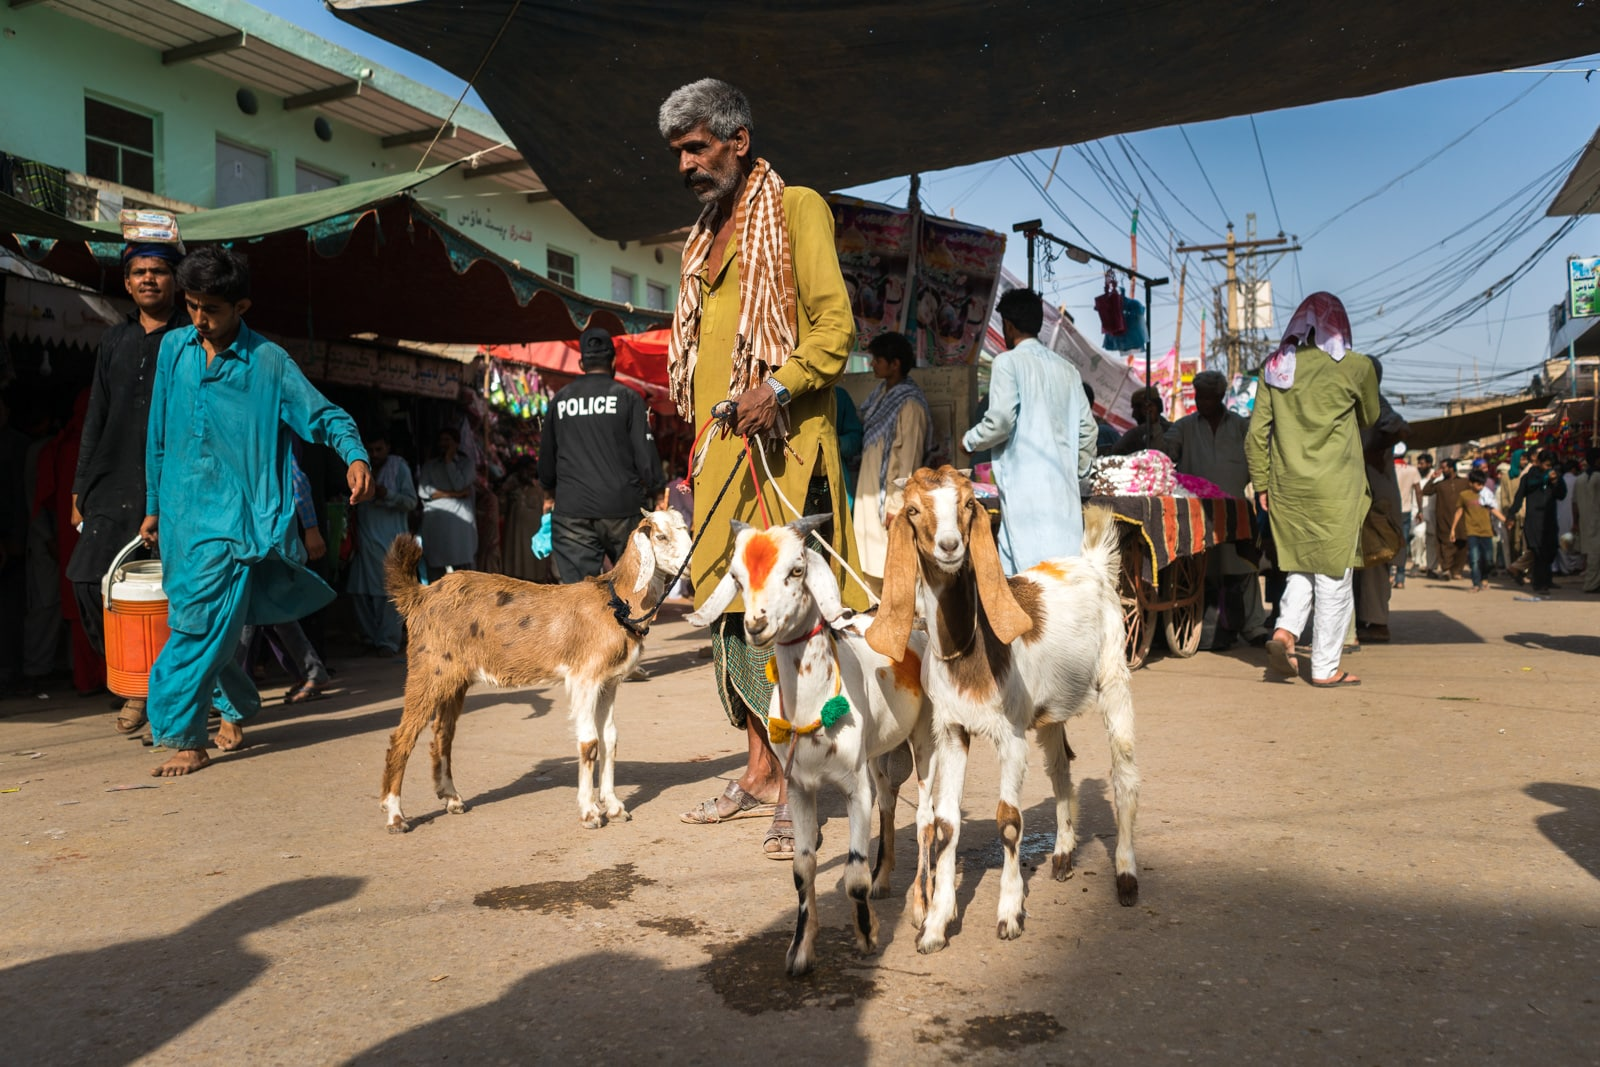 The Urs of Lal Shahbaz Qalandar in Sehwan, Pakistan - Man selling goats on the street - Lost With Purpose travel blog